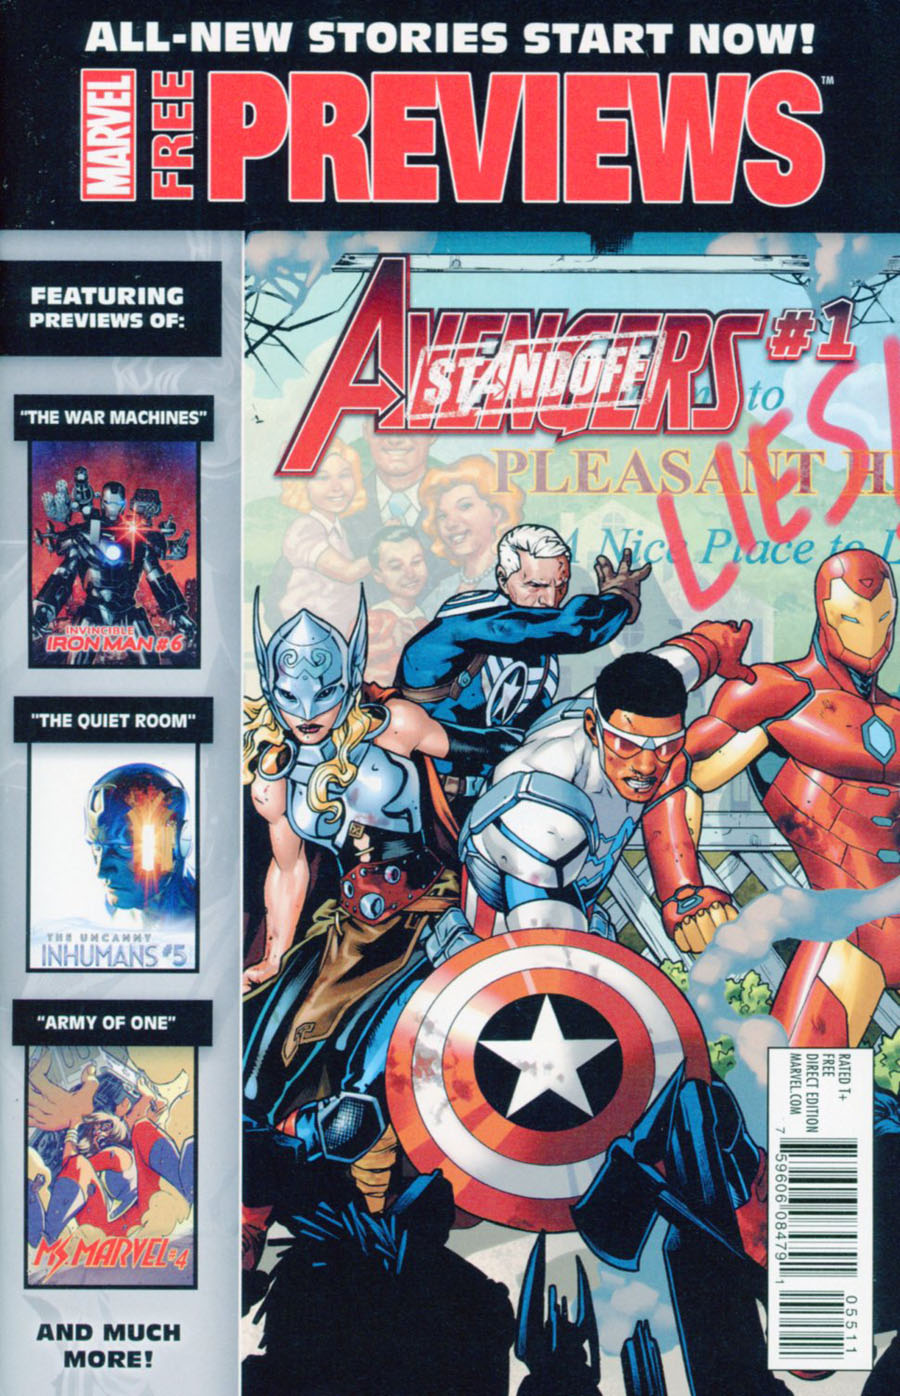 Marvel New Stories Start Now Previews